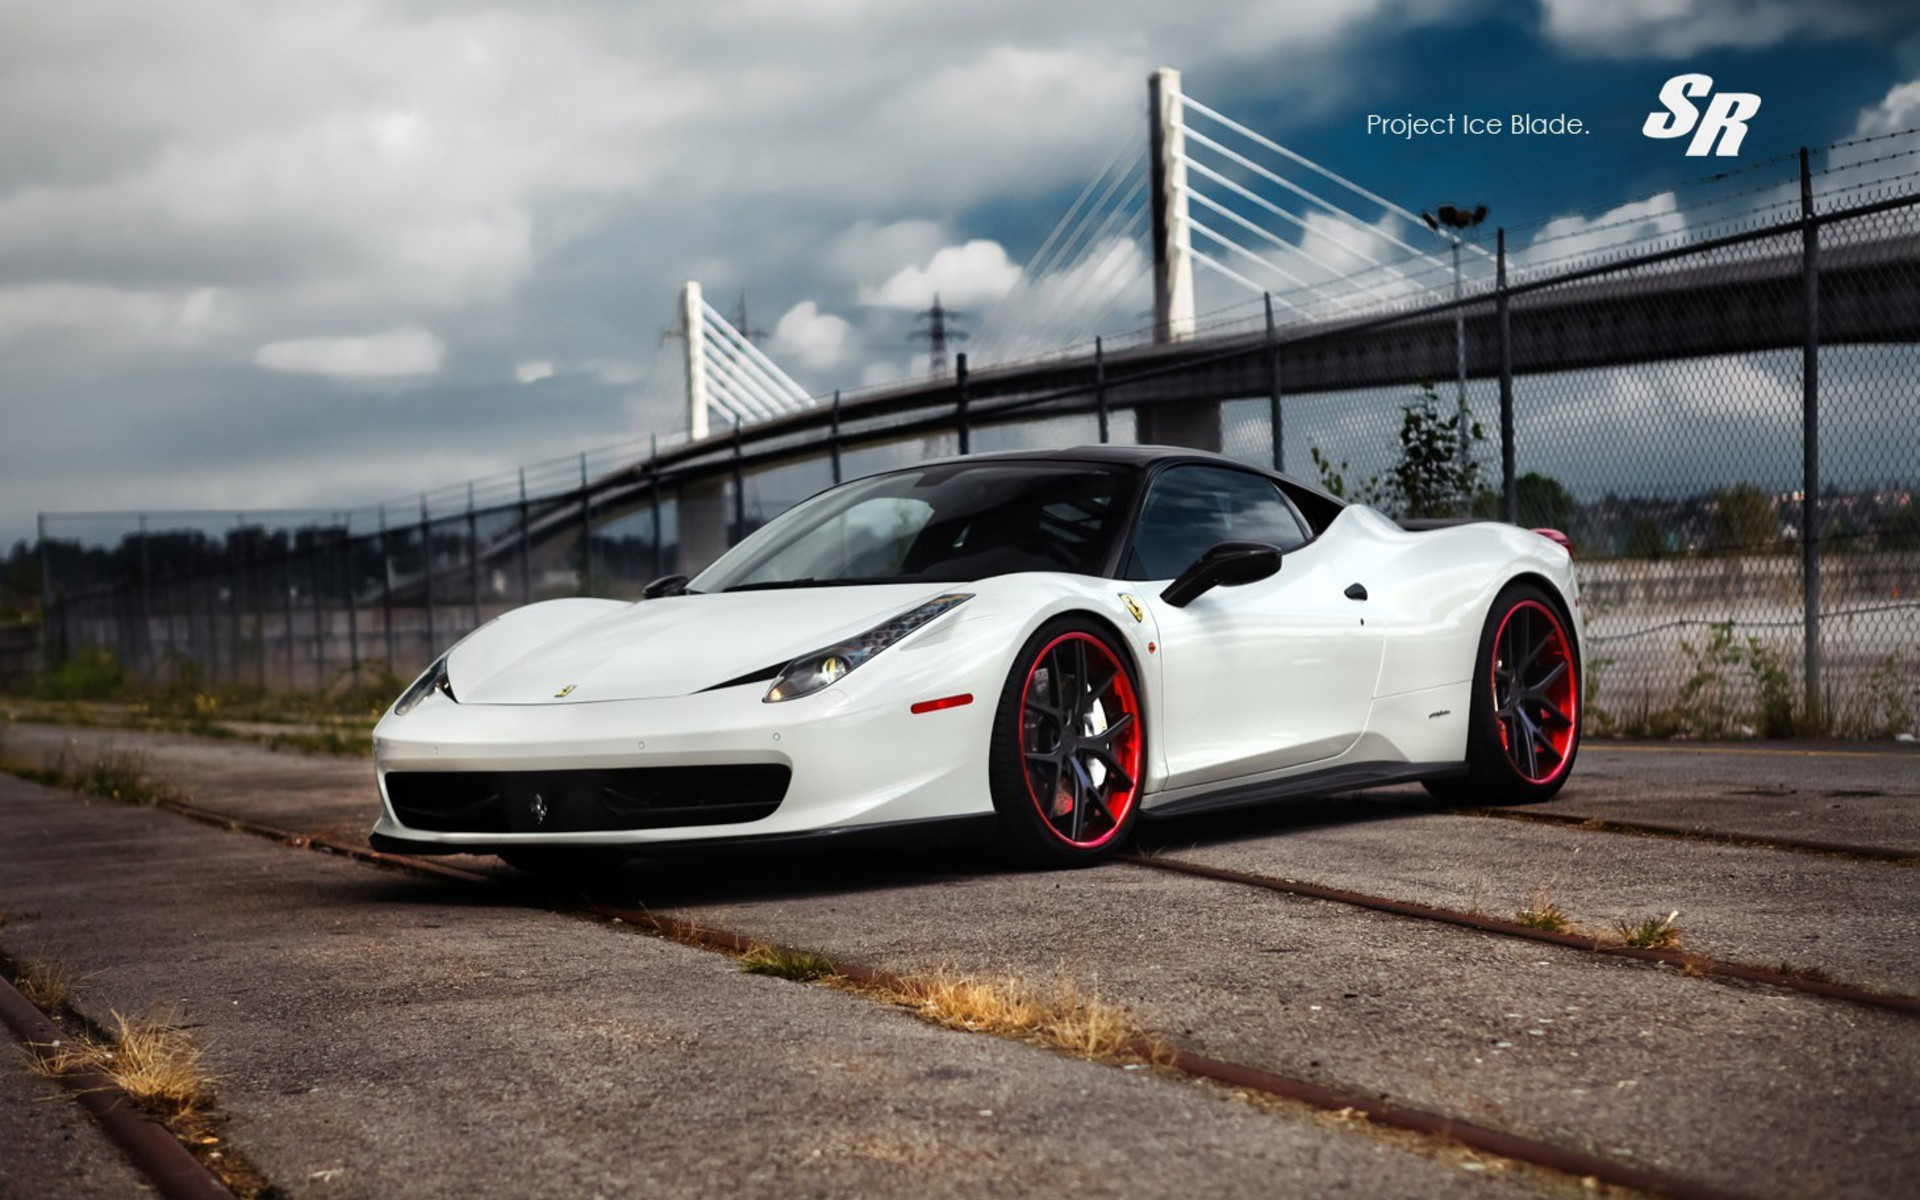 wallpaper resolutions - Ferrari 458 Italia Wallpaper 19201080